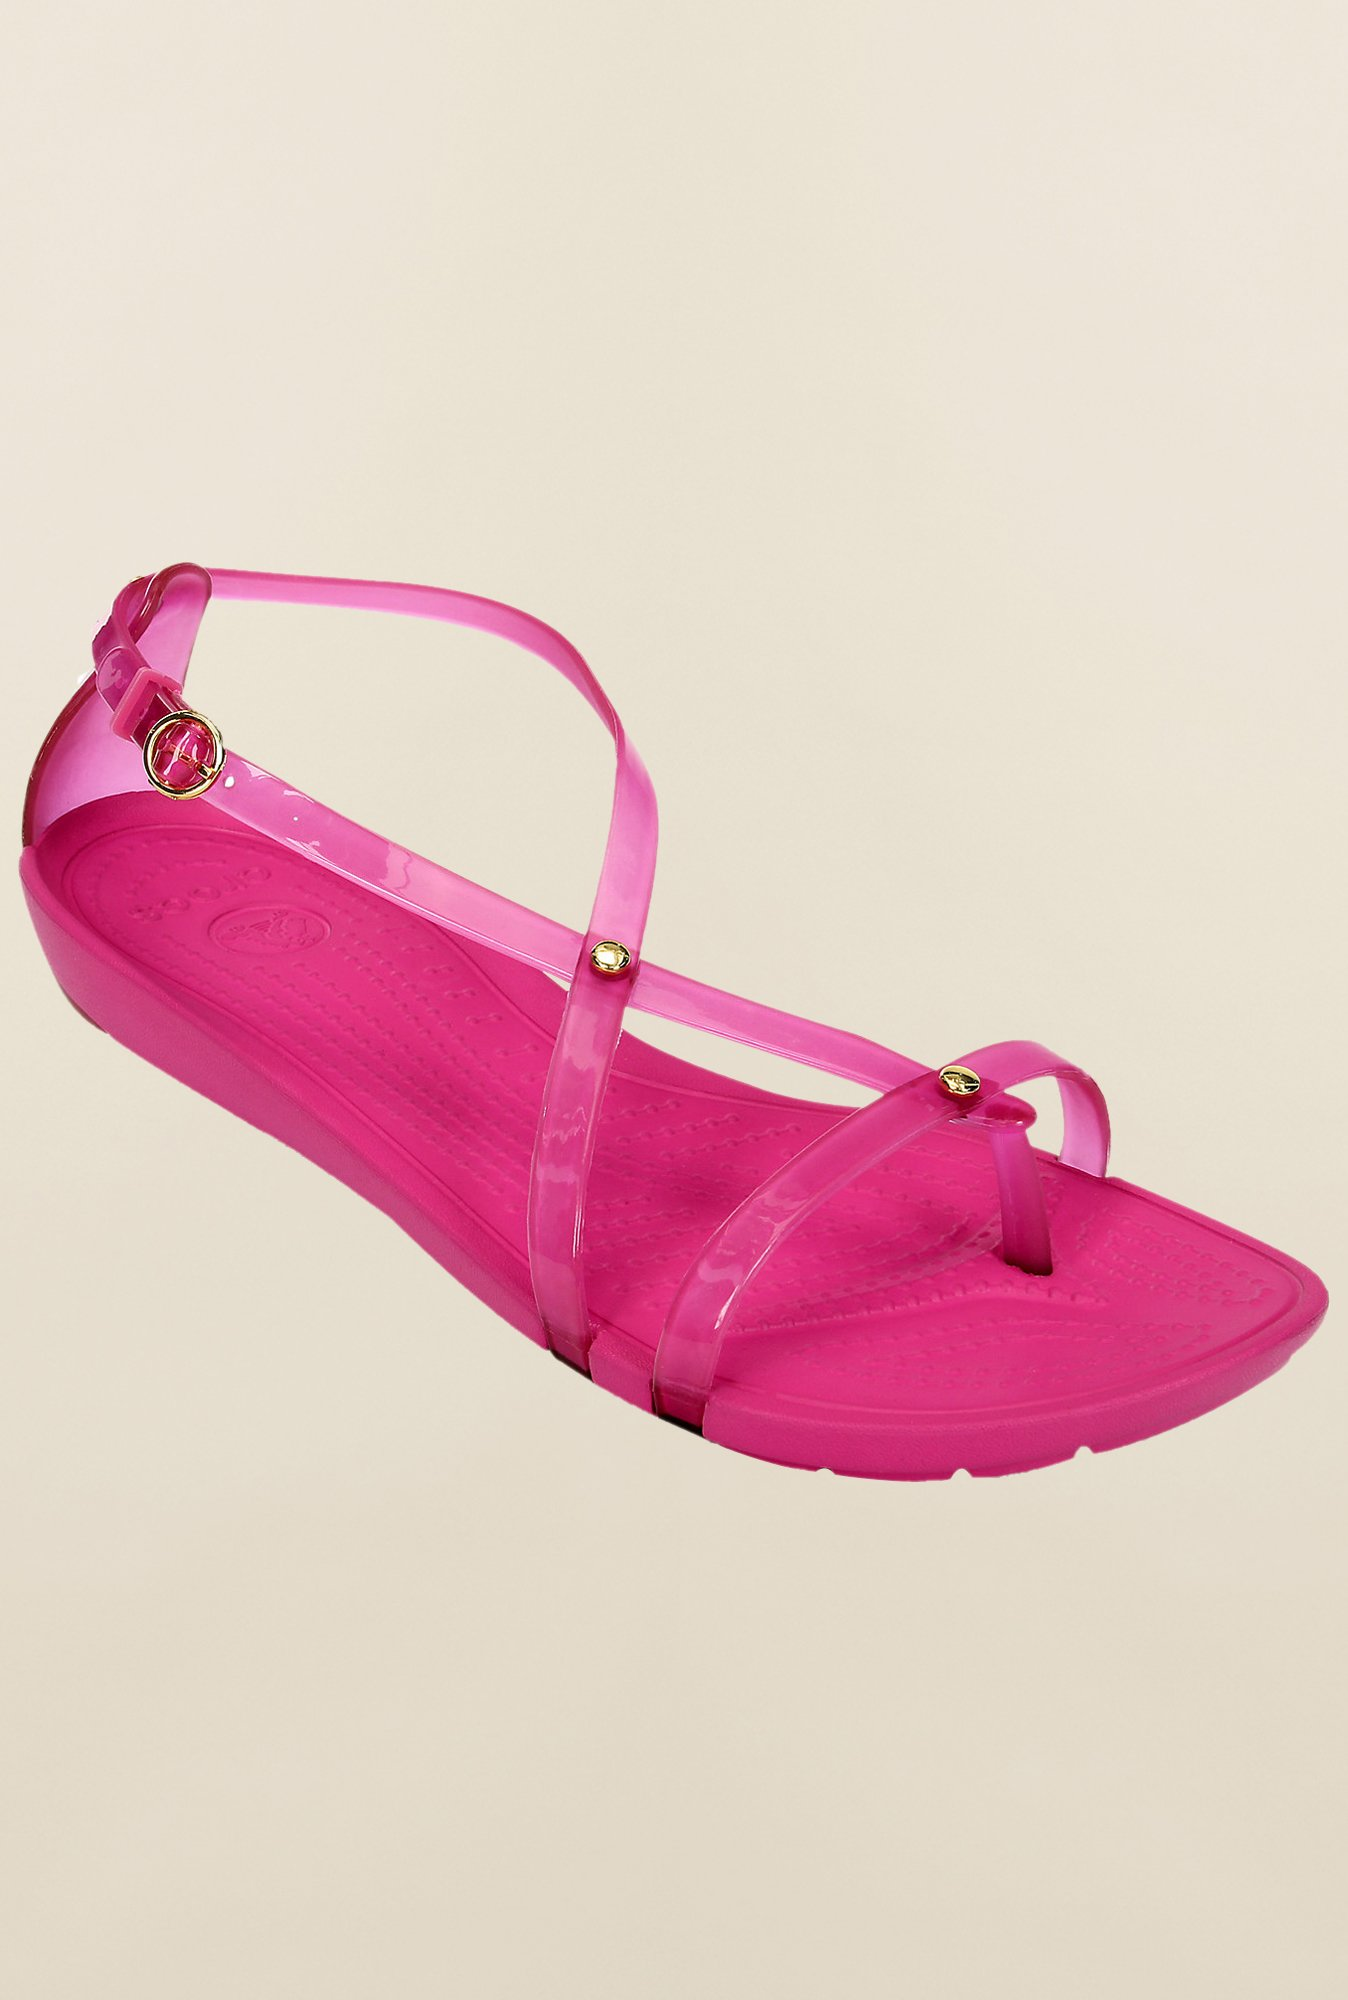 Crocs Really Sexi Fuchsia Cross Strap Sandals